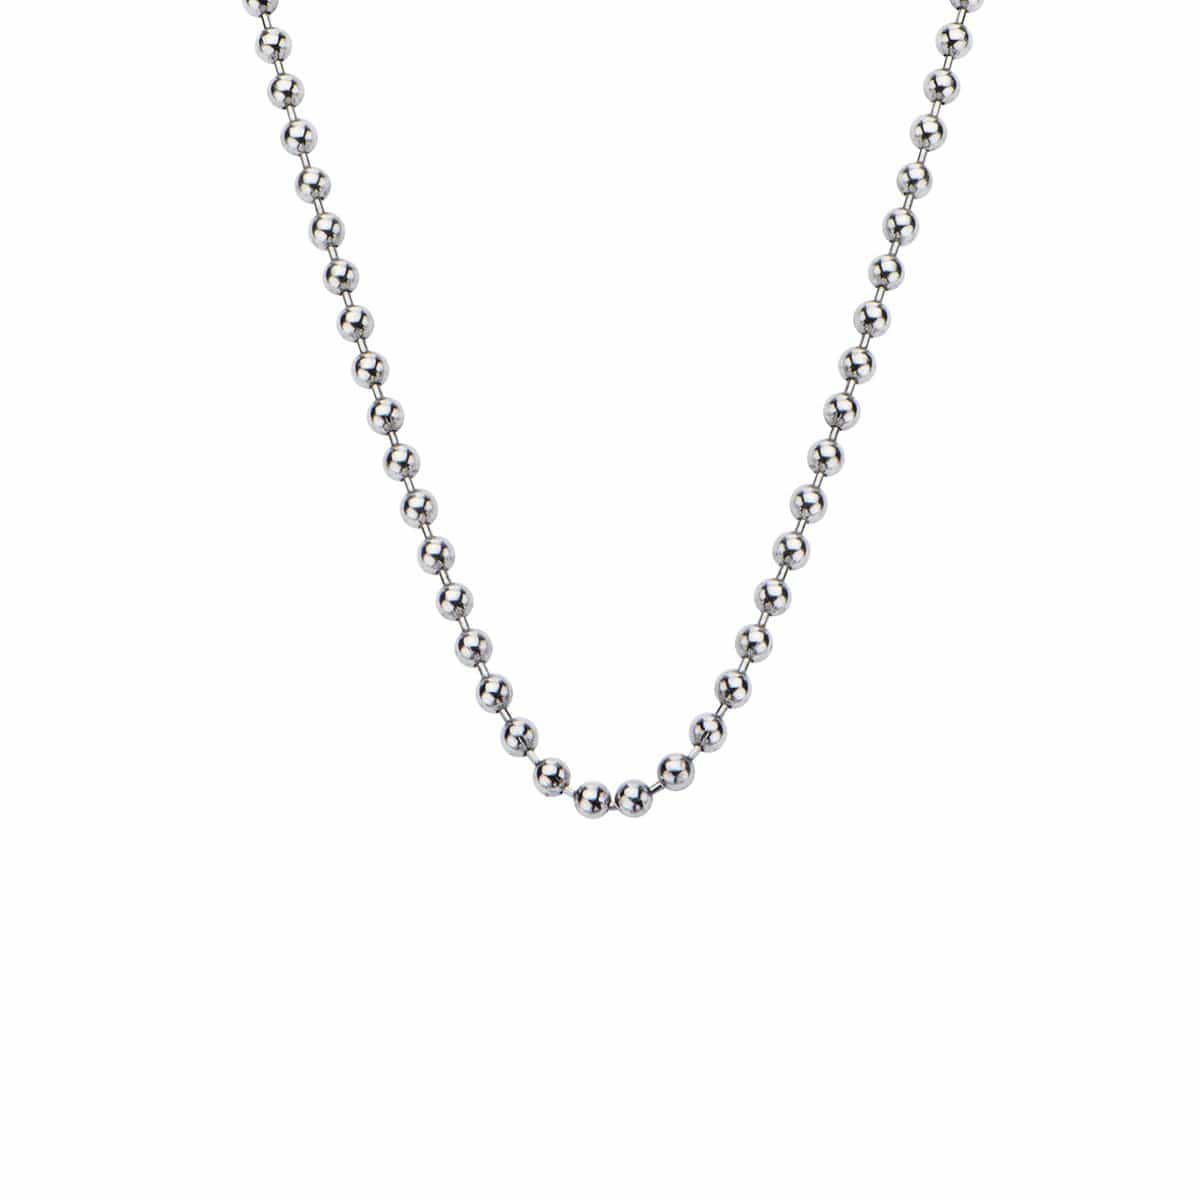 Silver Stainless Steel 3mm Ball Chain Chains